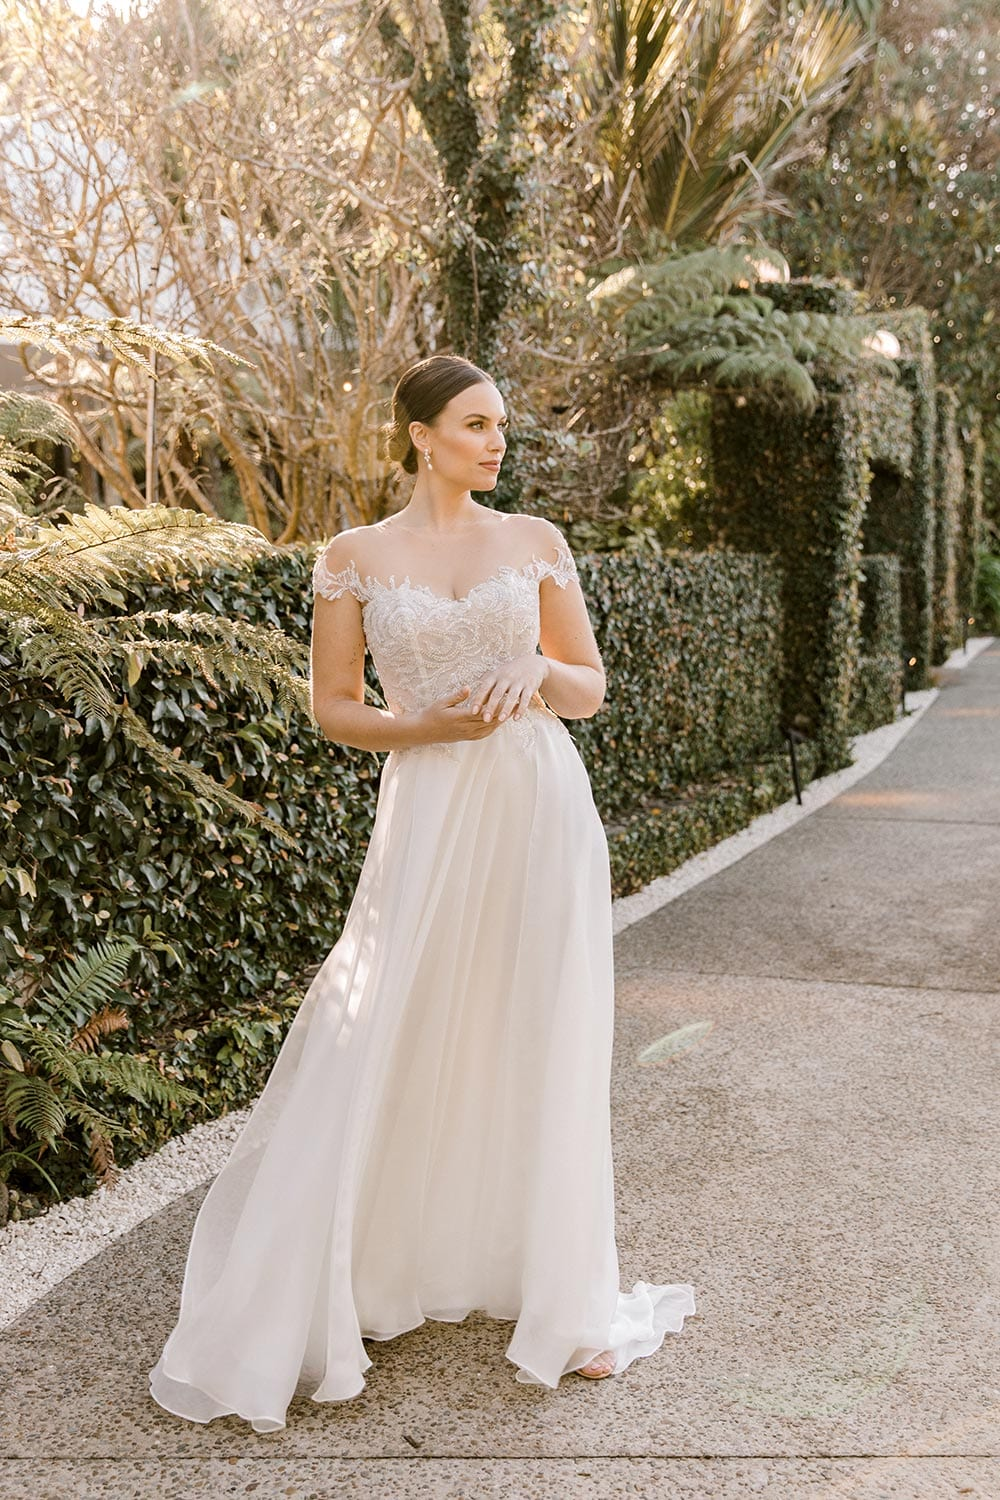 Lena Wedding Dress from Vinka Design. Gorgeous wedding dress with fitted bodice & dreamy silk chiffon & tulle skirt. Off-shoulder detail with an illusion neckline made with fine Italian tulle & lace detail. Full length portrait of dress. Photographed in front of beautiful old building.